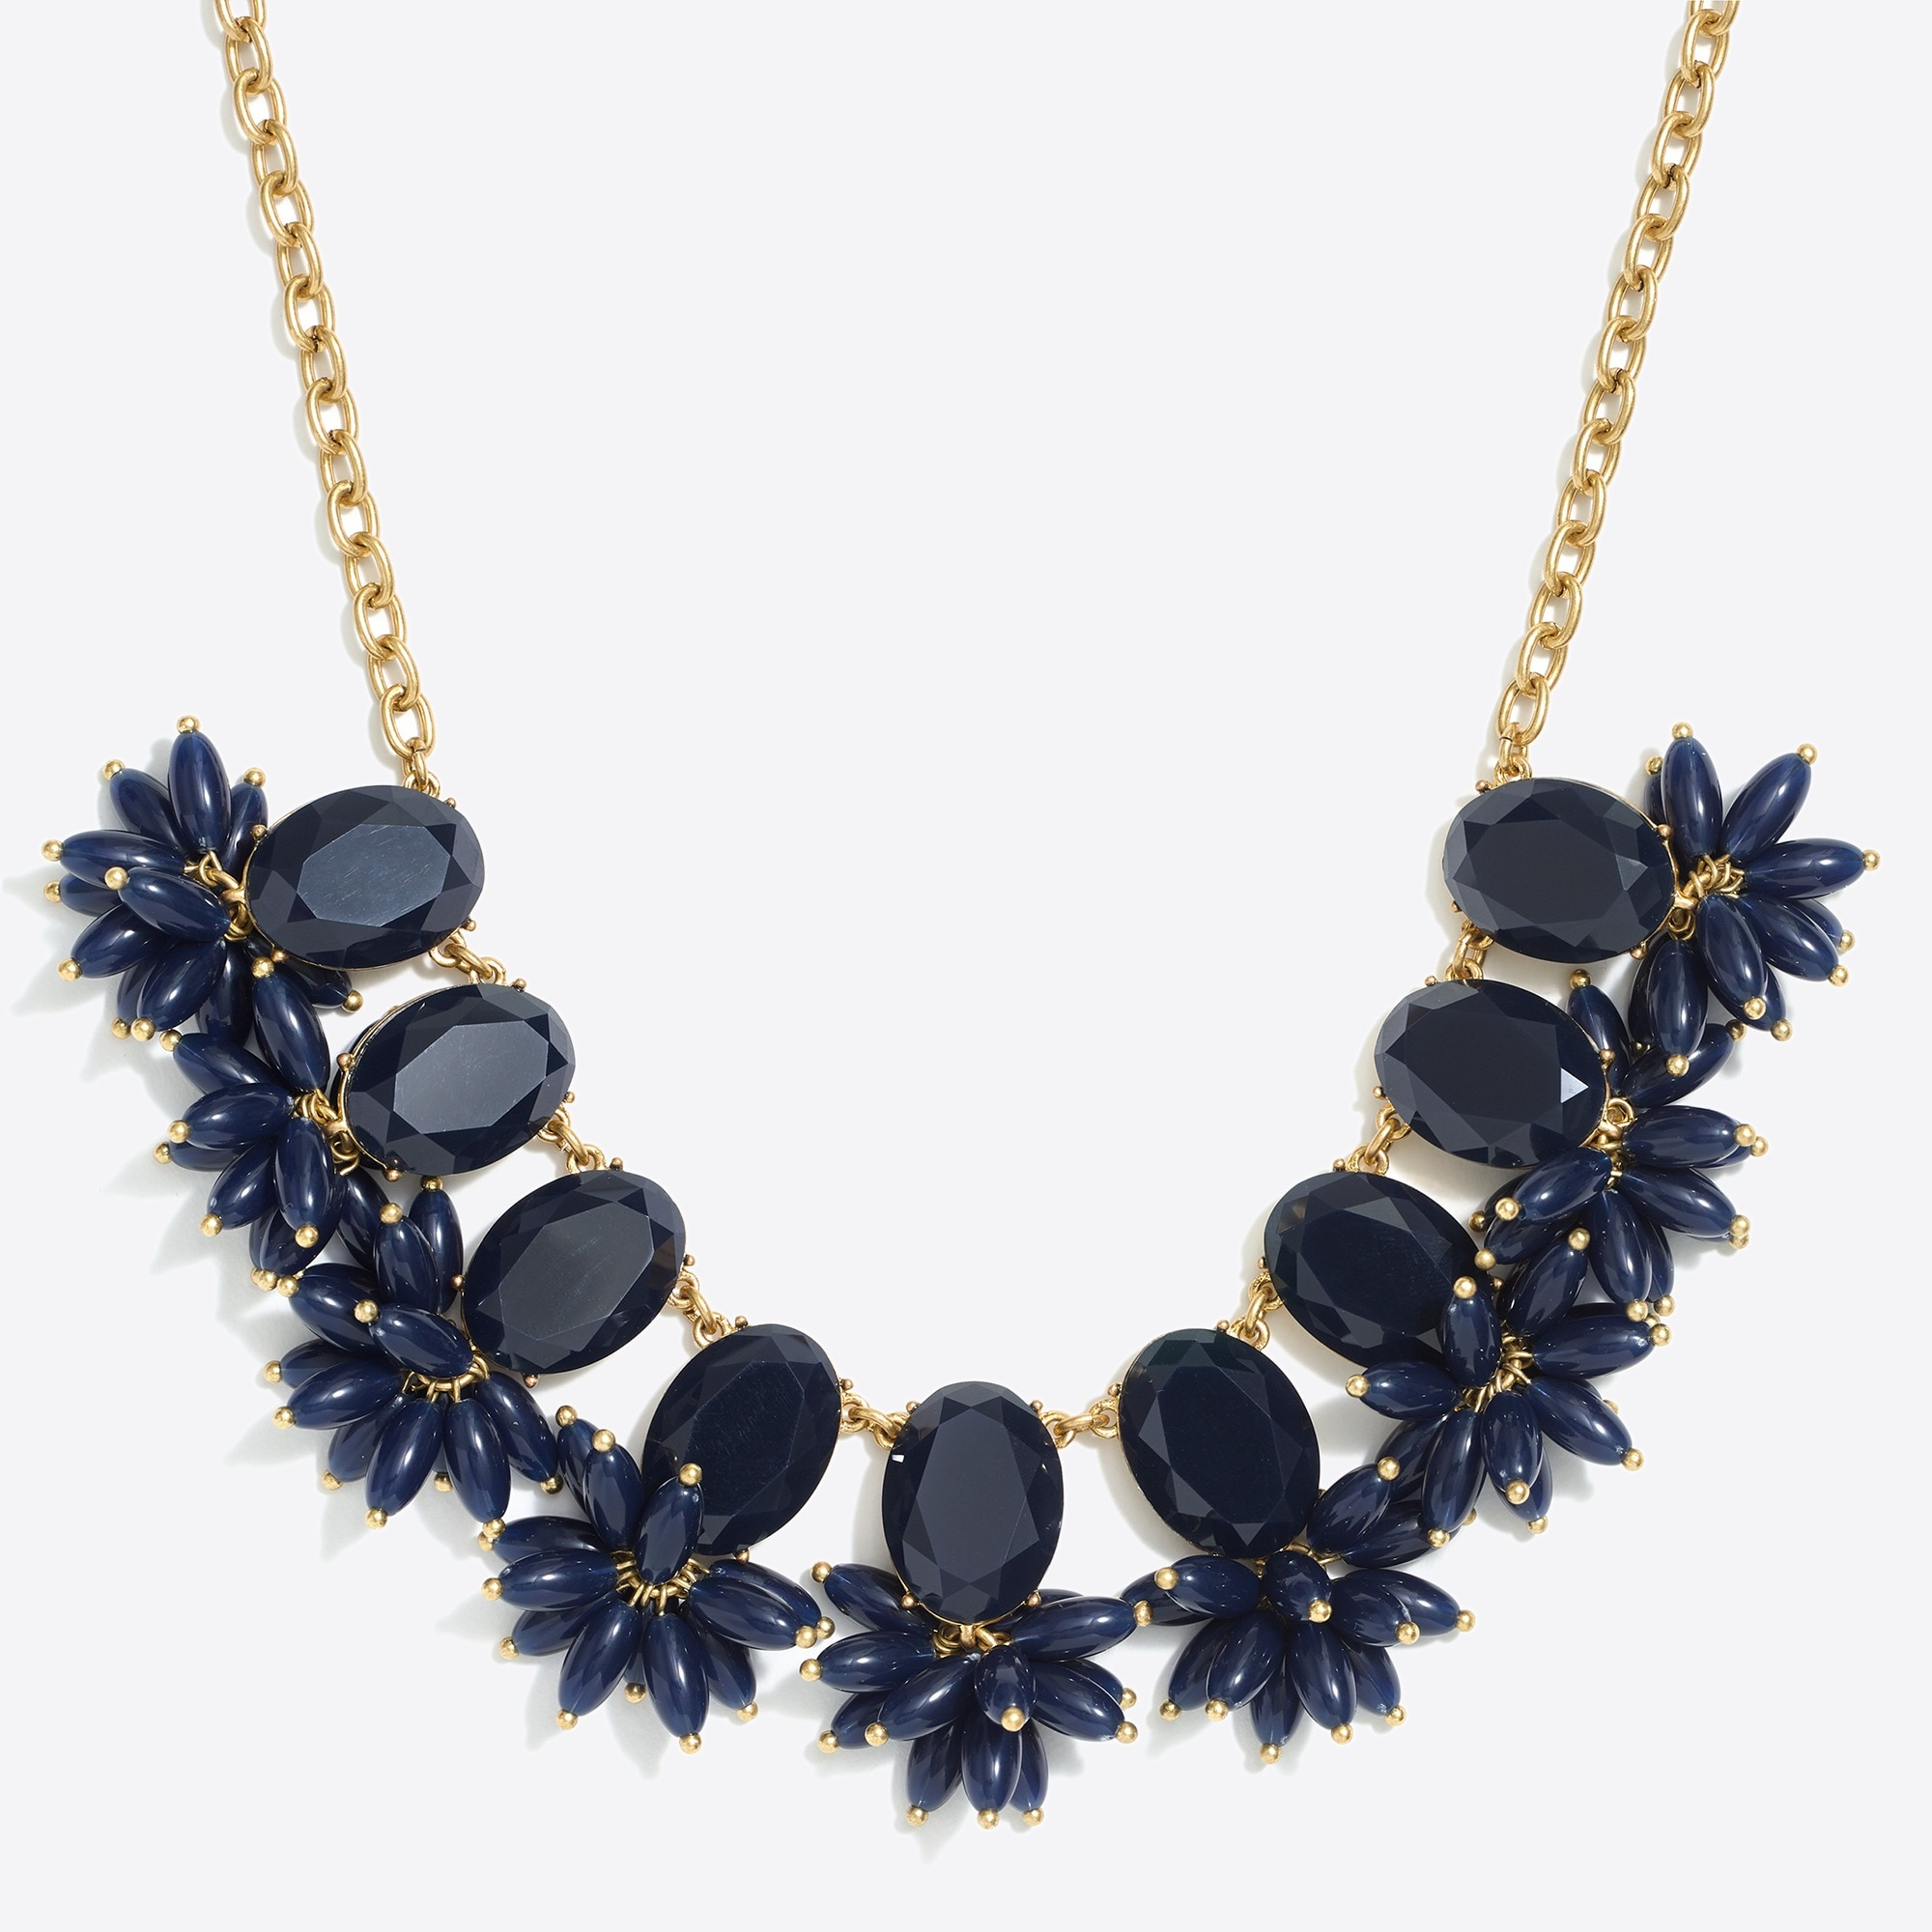 bursting beads statement necklace : factorywomen necklaces